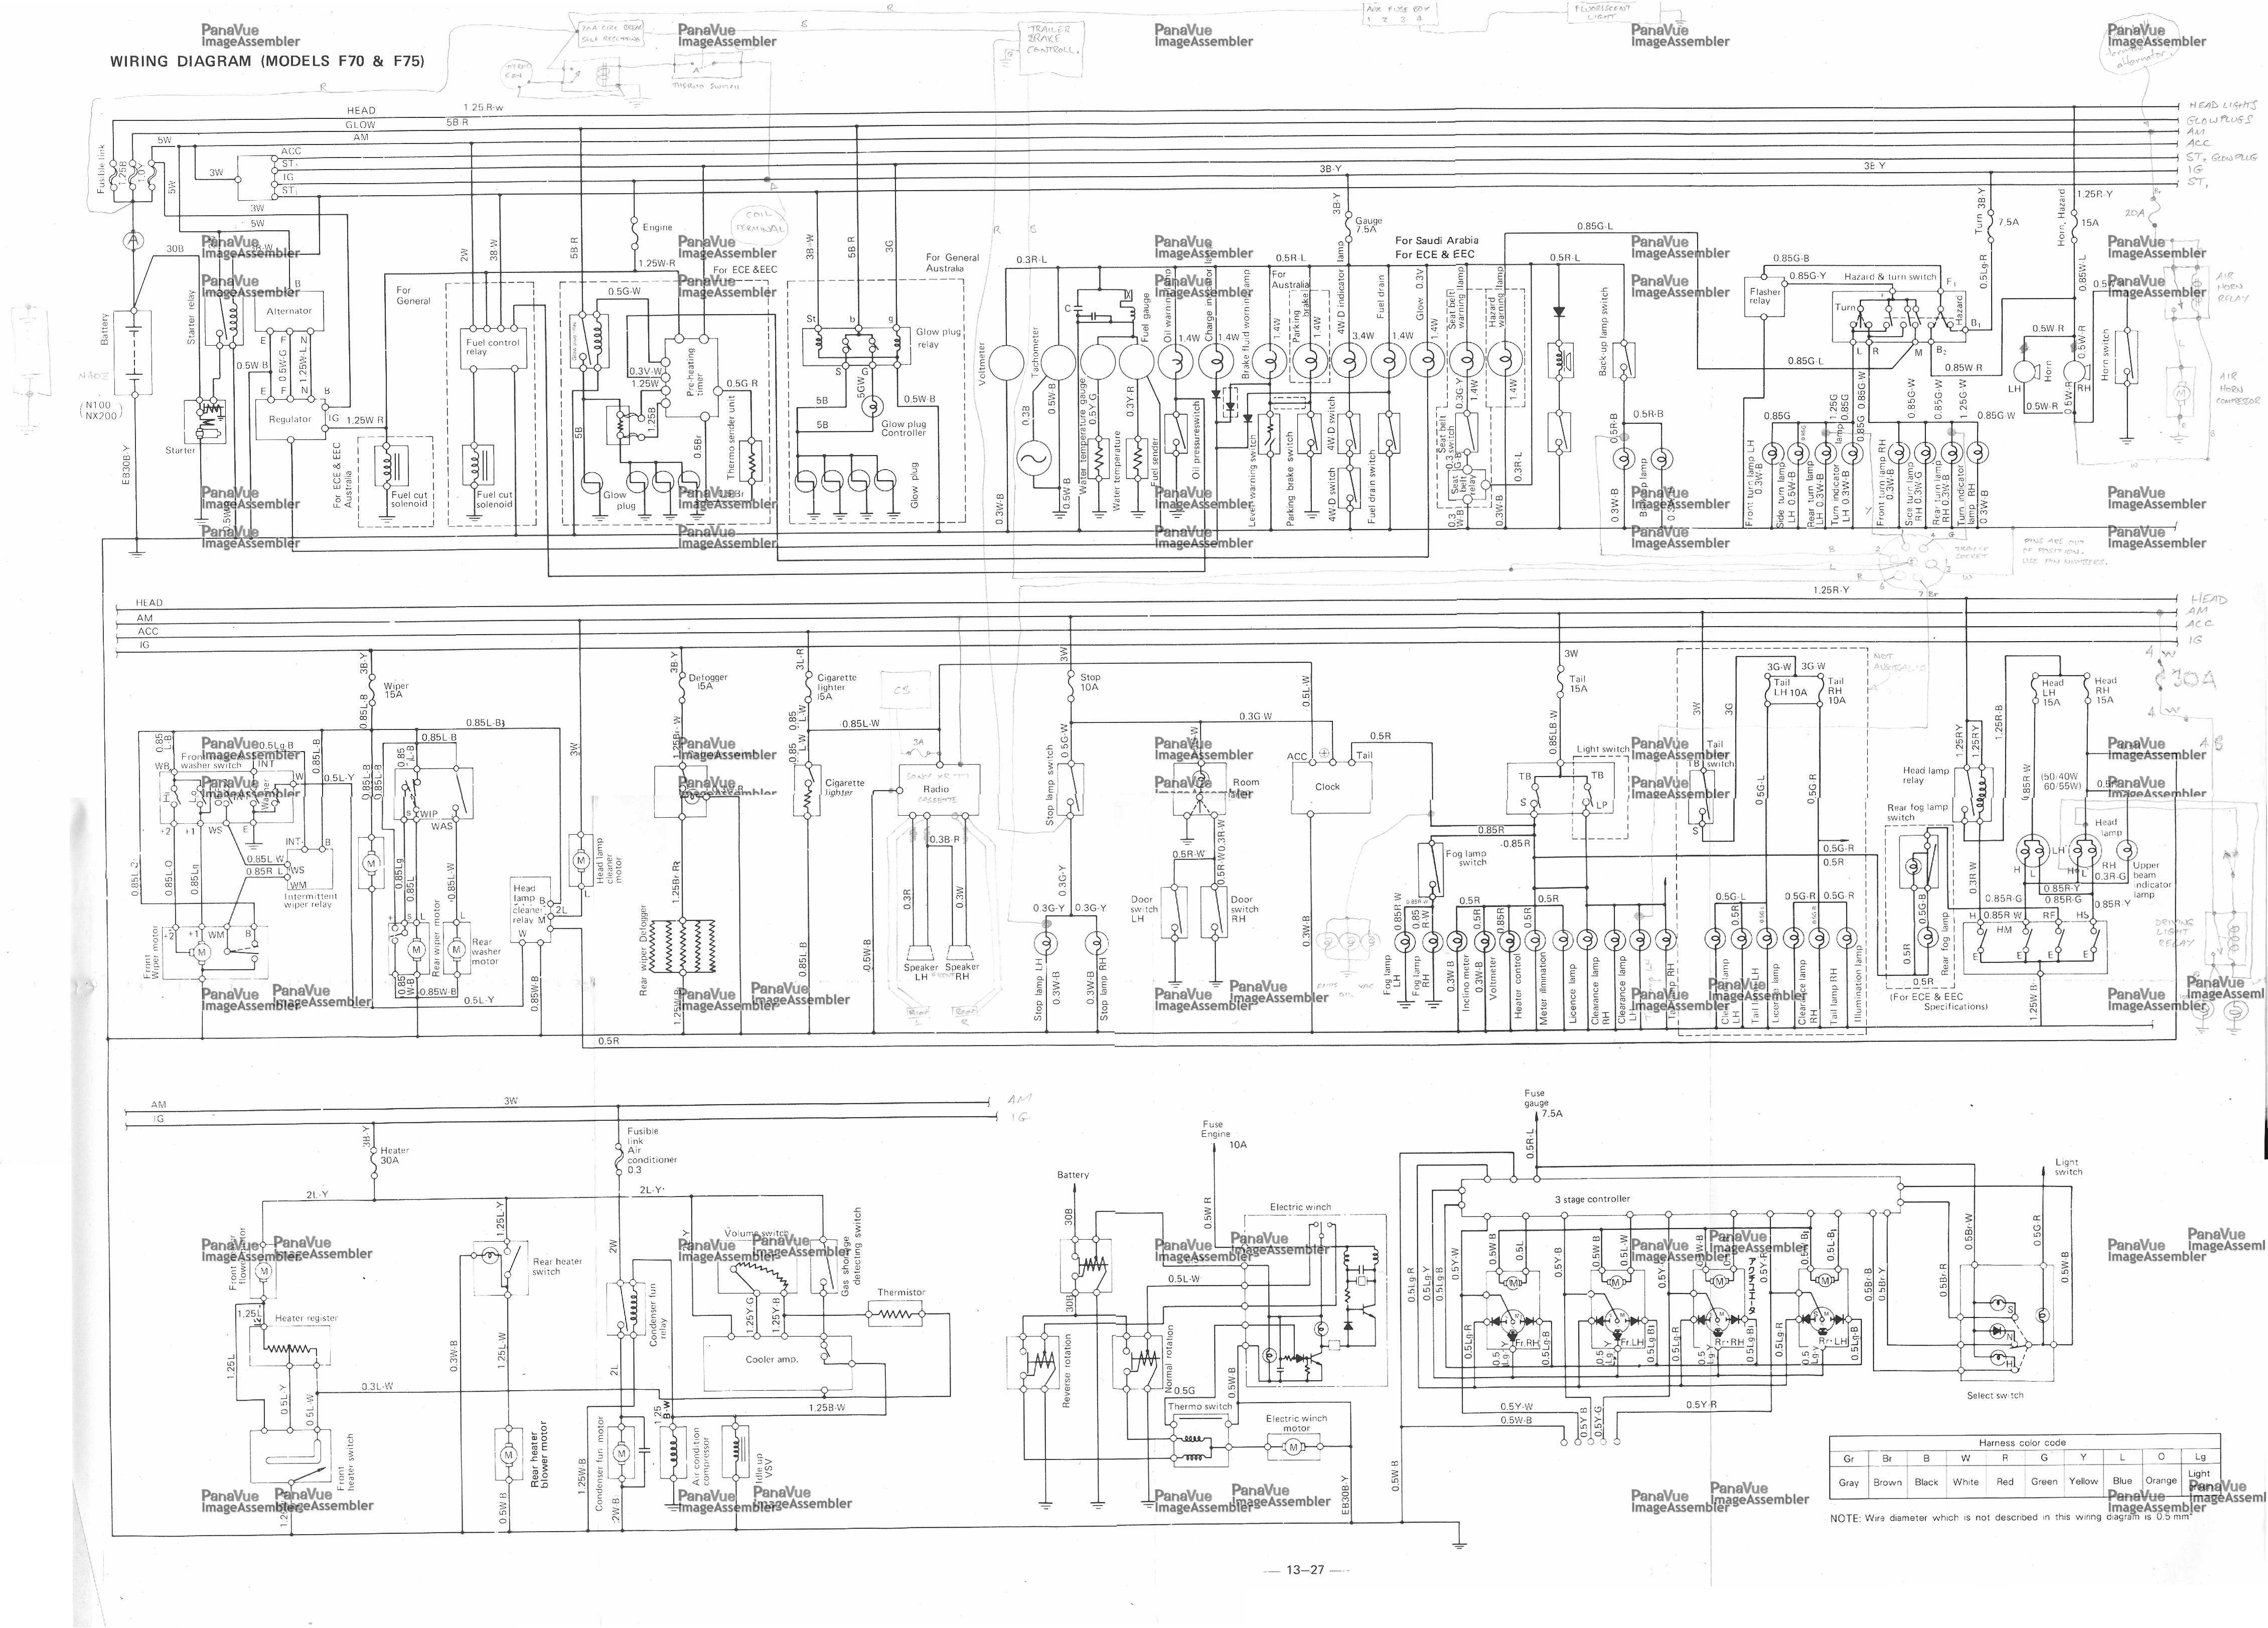 1992 chevy 1500 wiring diagrams free picture diagram wiring diagrams on electrical wiring diagrams free download  wiring diagrams on electrical wiring